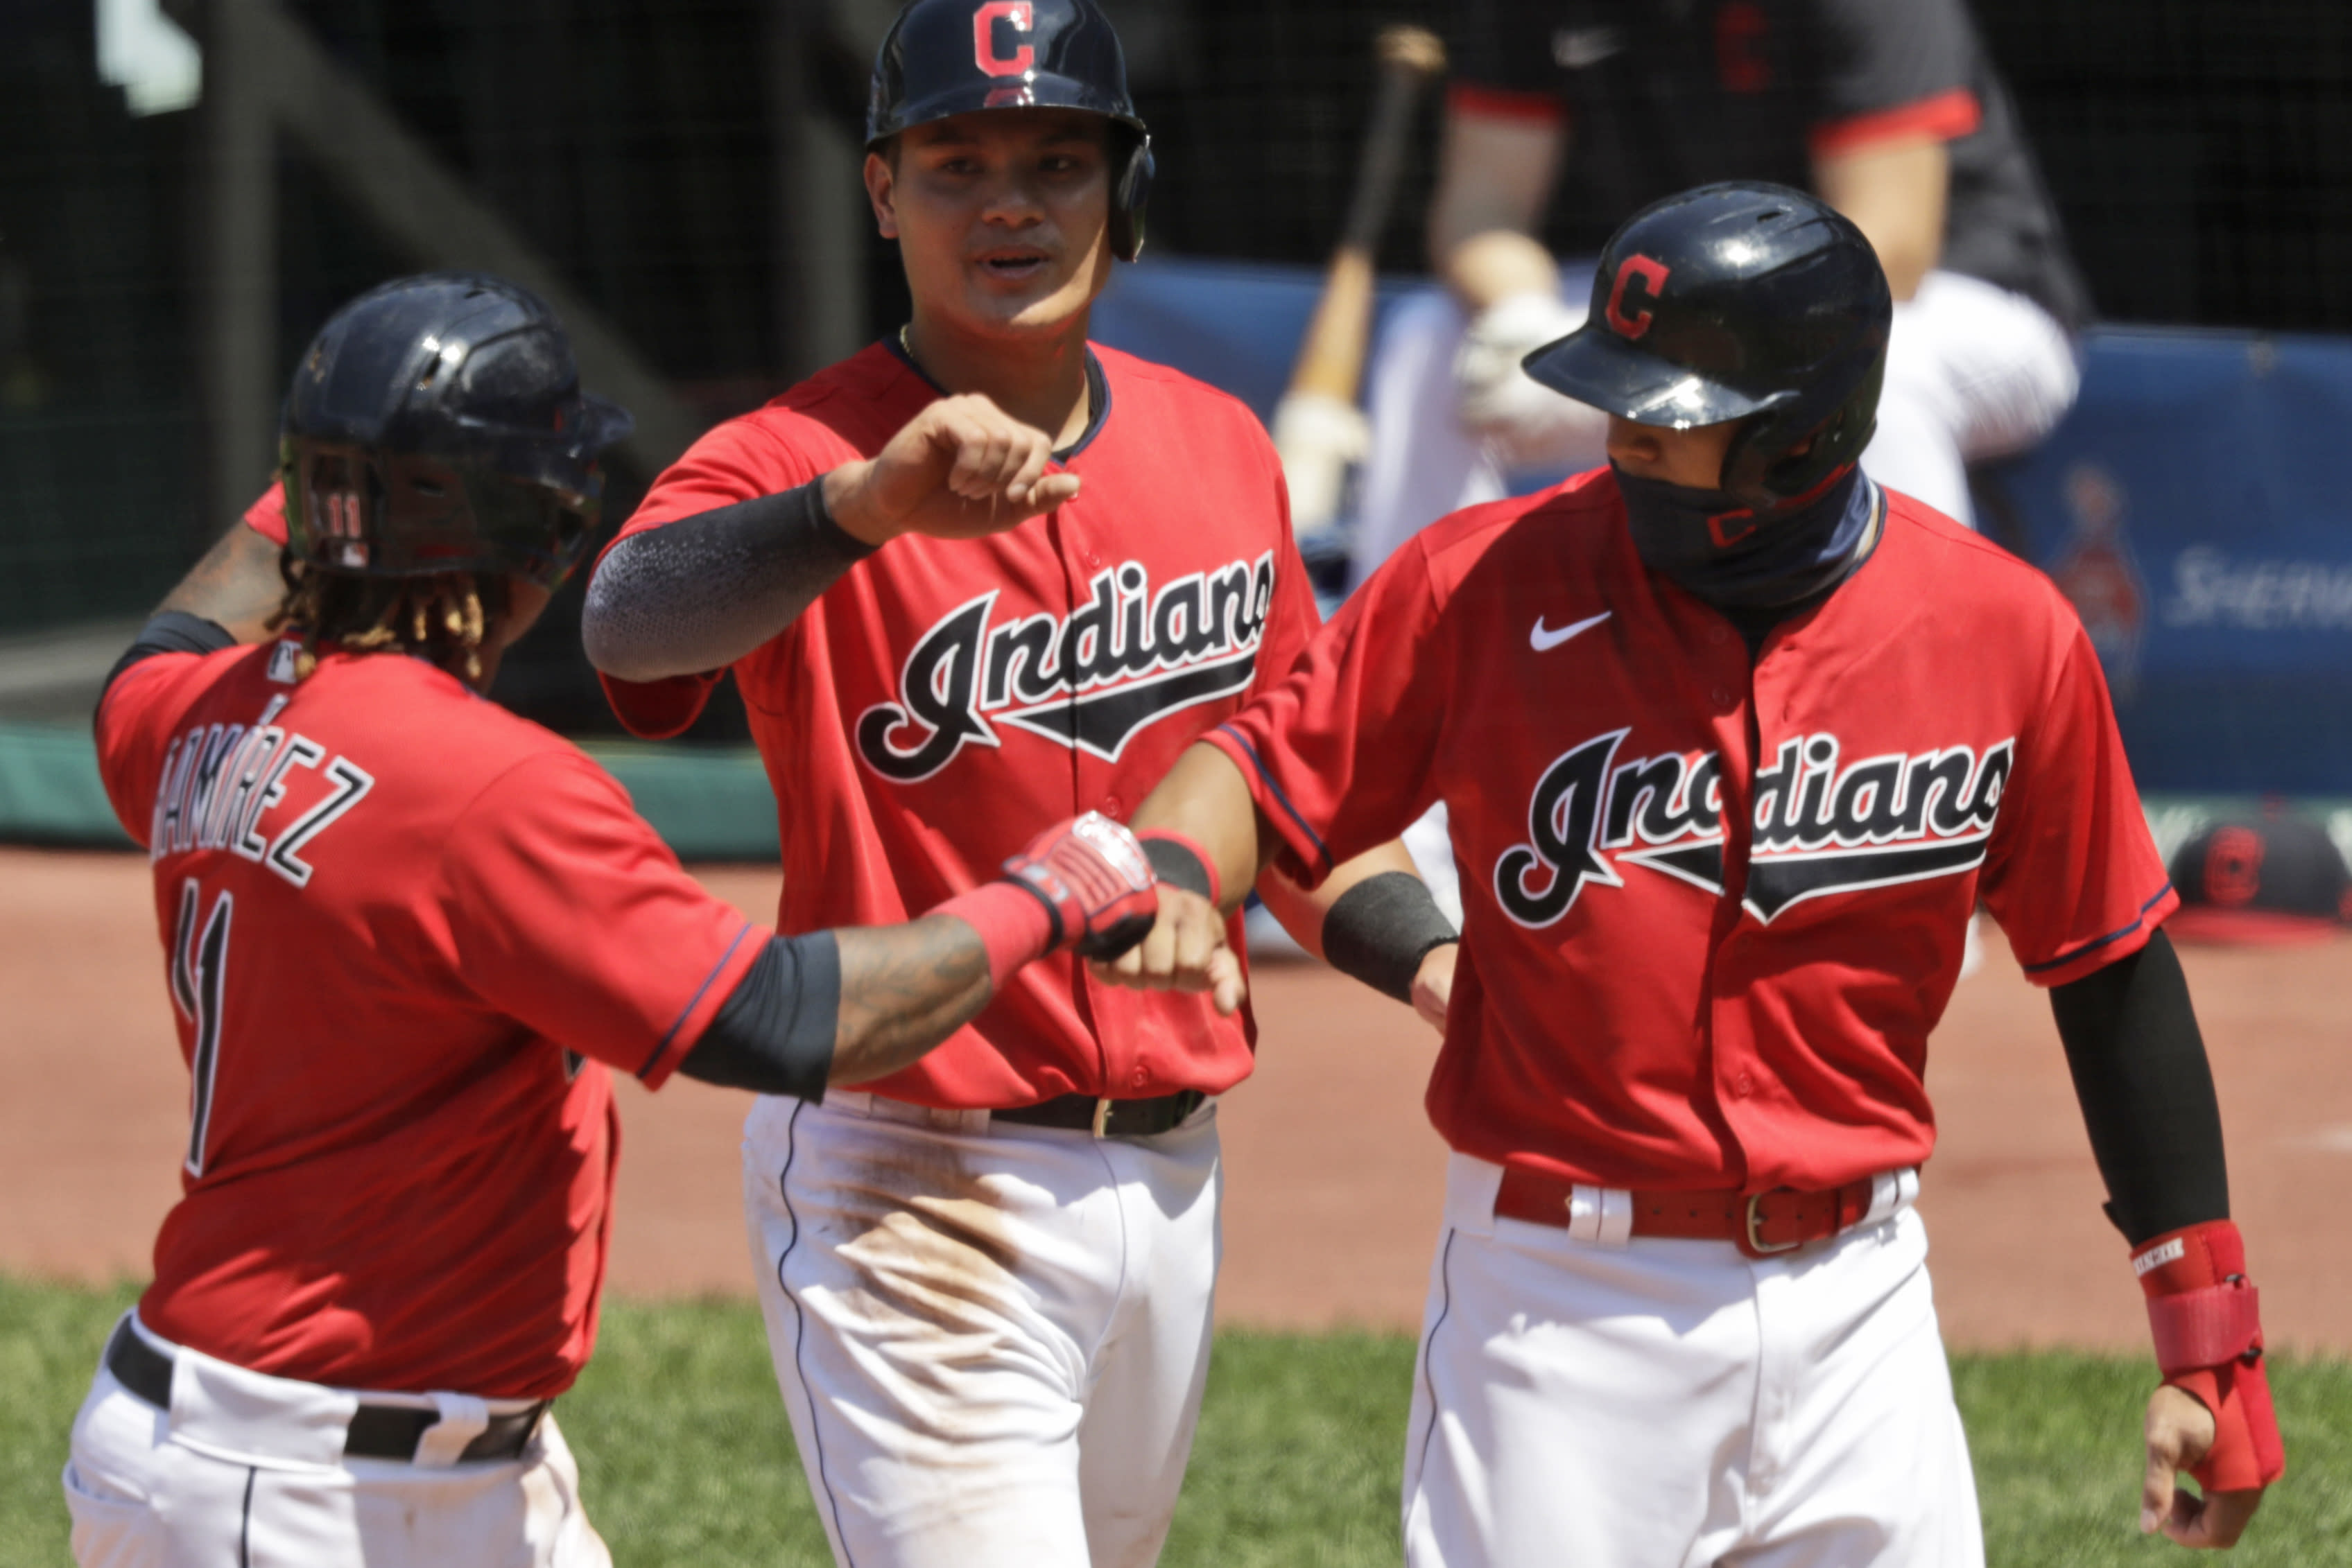 From left to right, Cleveland Indians' Jose Ramirez is congratulated by Yu Chang and Cesar Hernandez after hitting a three-run home run in the fourth inning in a baseball game against the Kansas City Royals, Sunday, July 26, 2020, in Cleveland. (AP Photo/Tony Dejak)